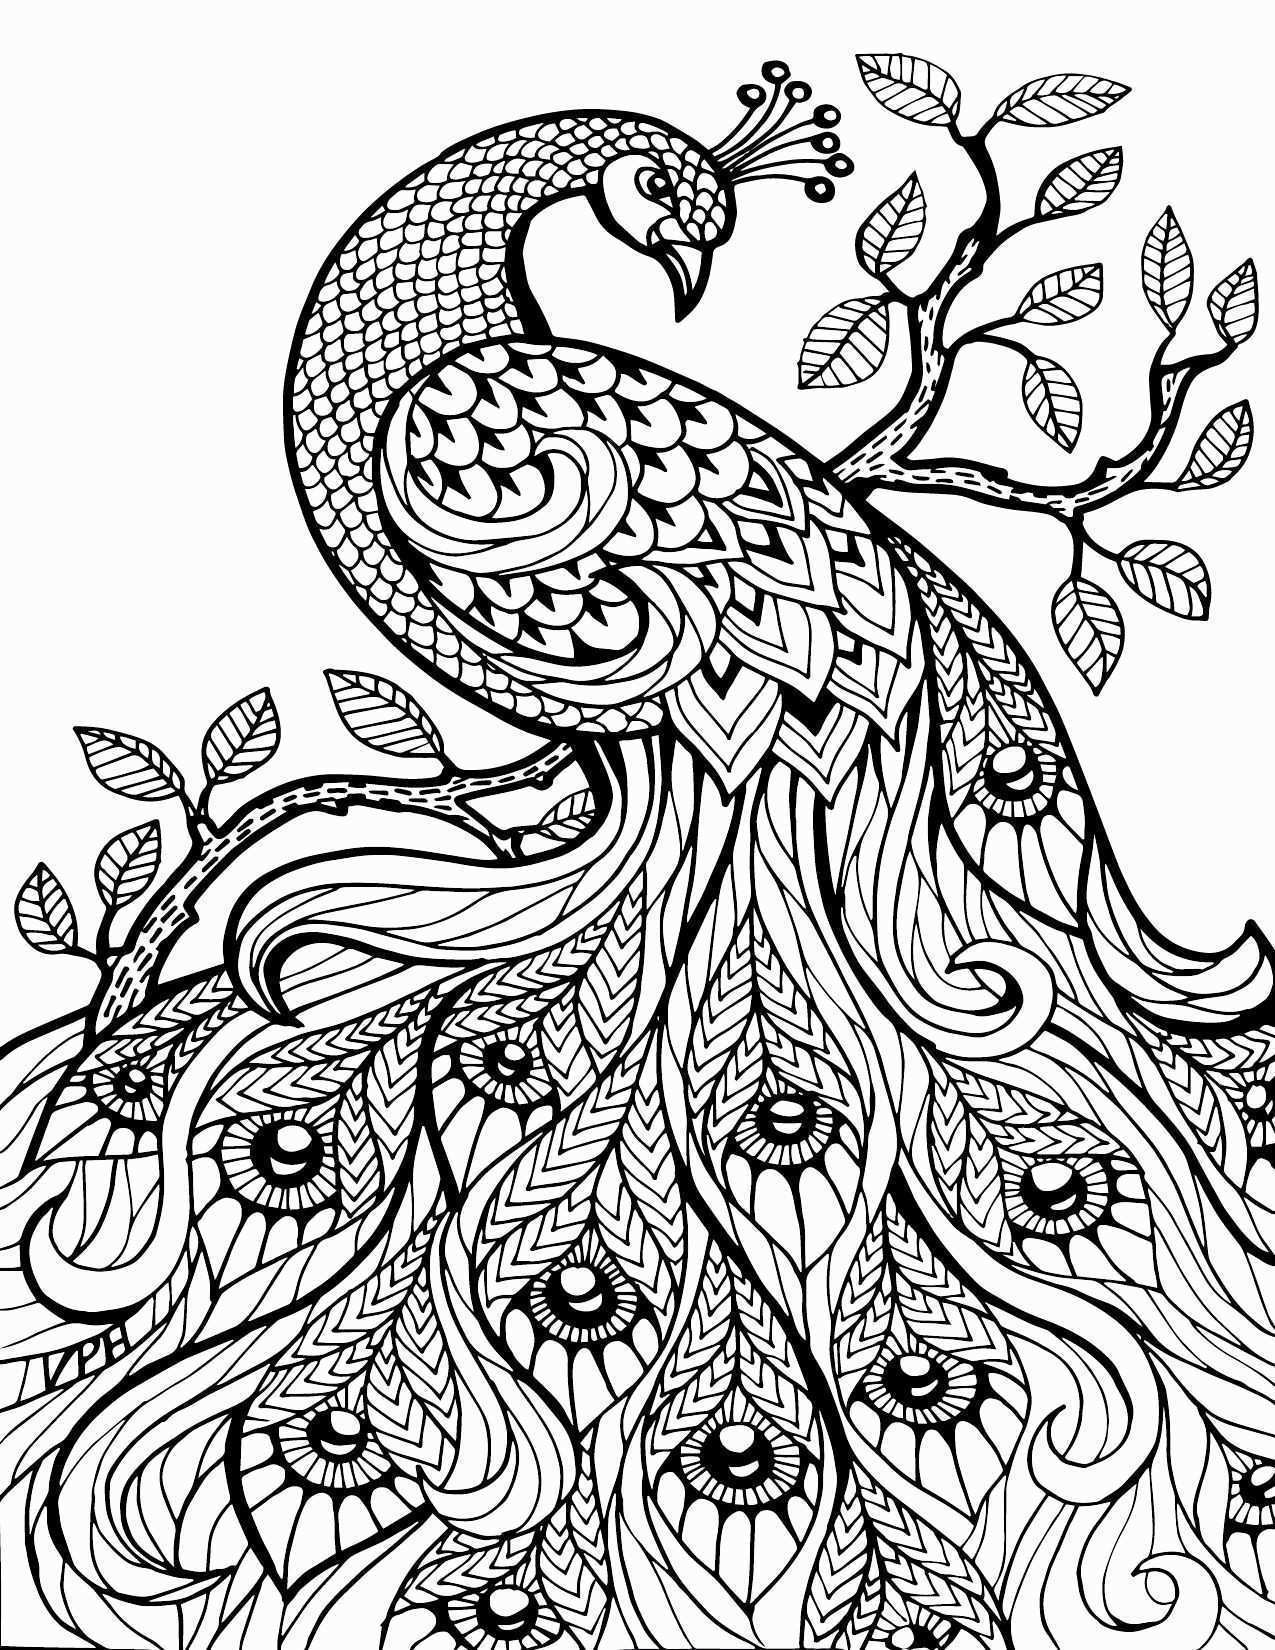 Print Free Beautiful Print Coloring Pages Luxury S S Media